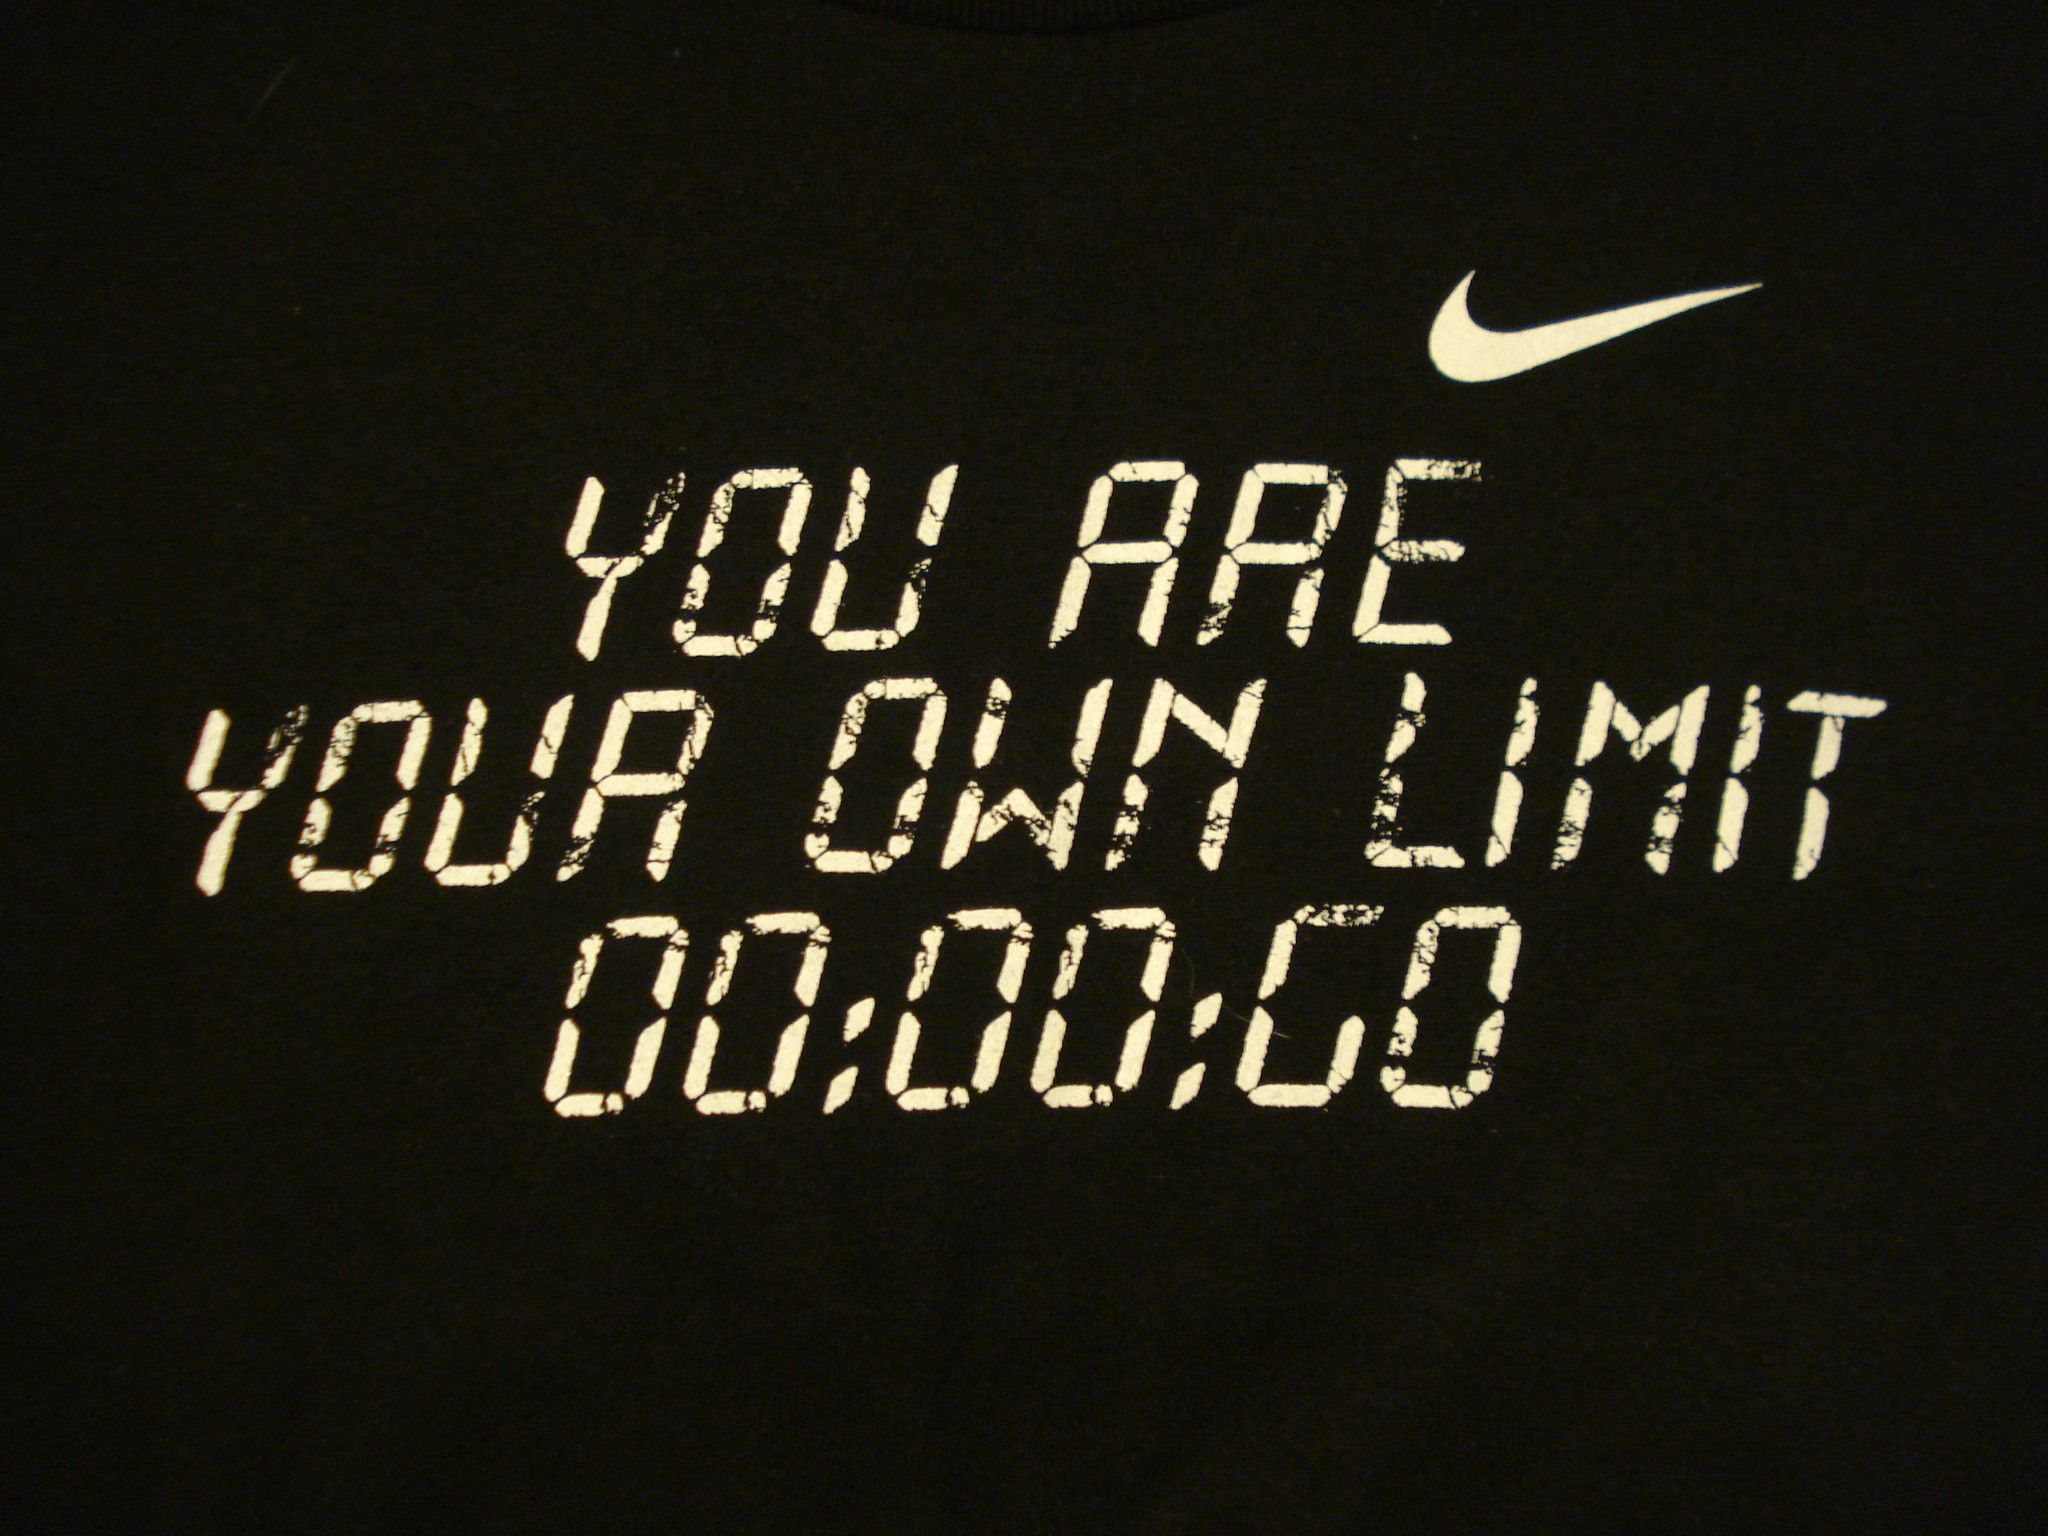 Nike Quotes Wallpaper Hd For Desktop 2048 X 1536 Px 94523 KB Iphone Soccer